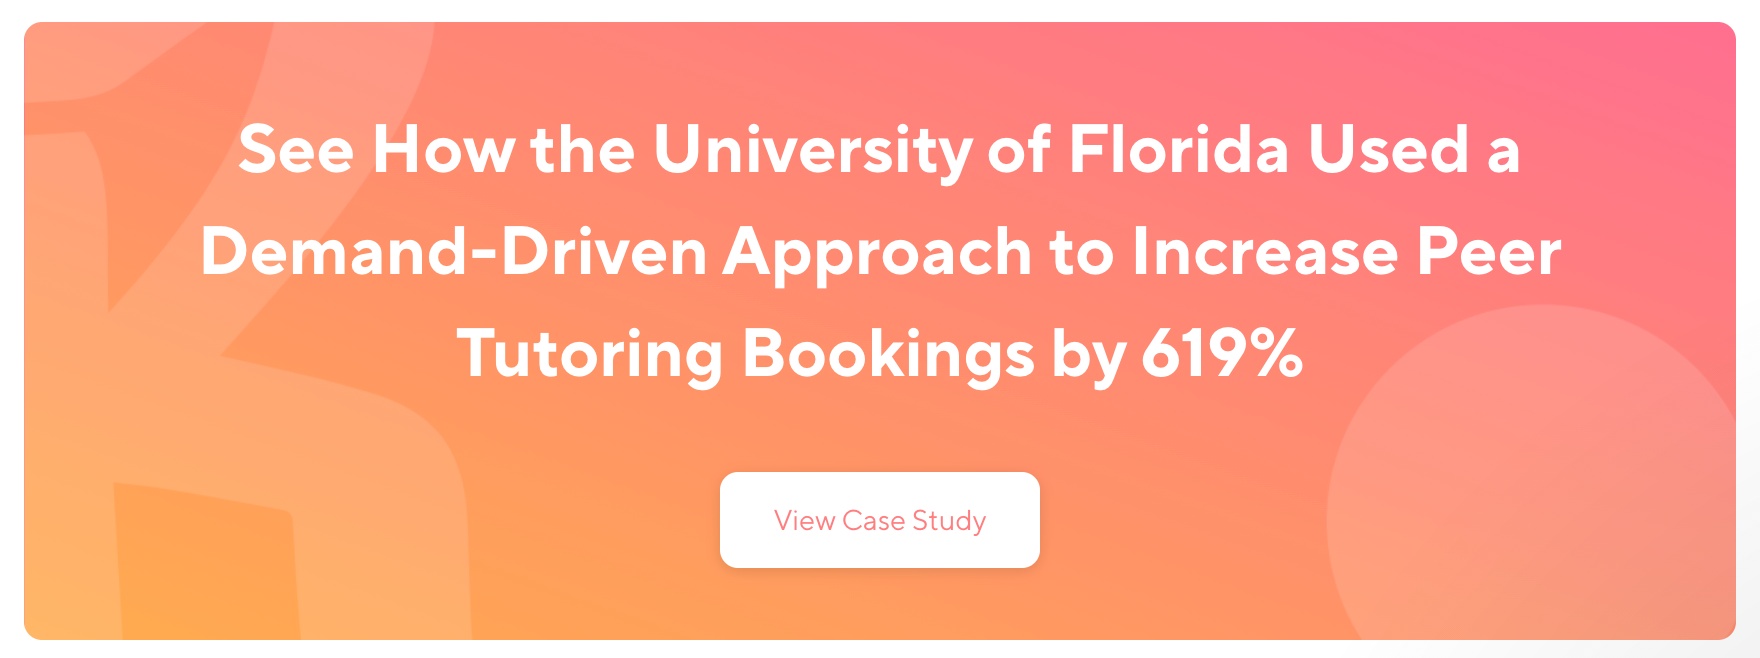 See How the University of Florida Used a Demand Driven Model to increase peer  tutoring bookings by 619%.